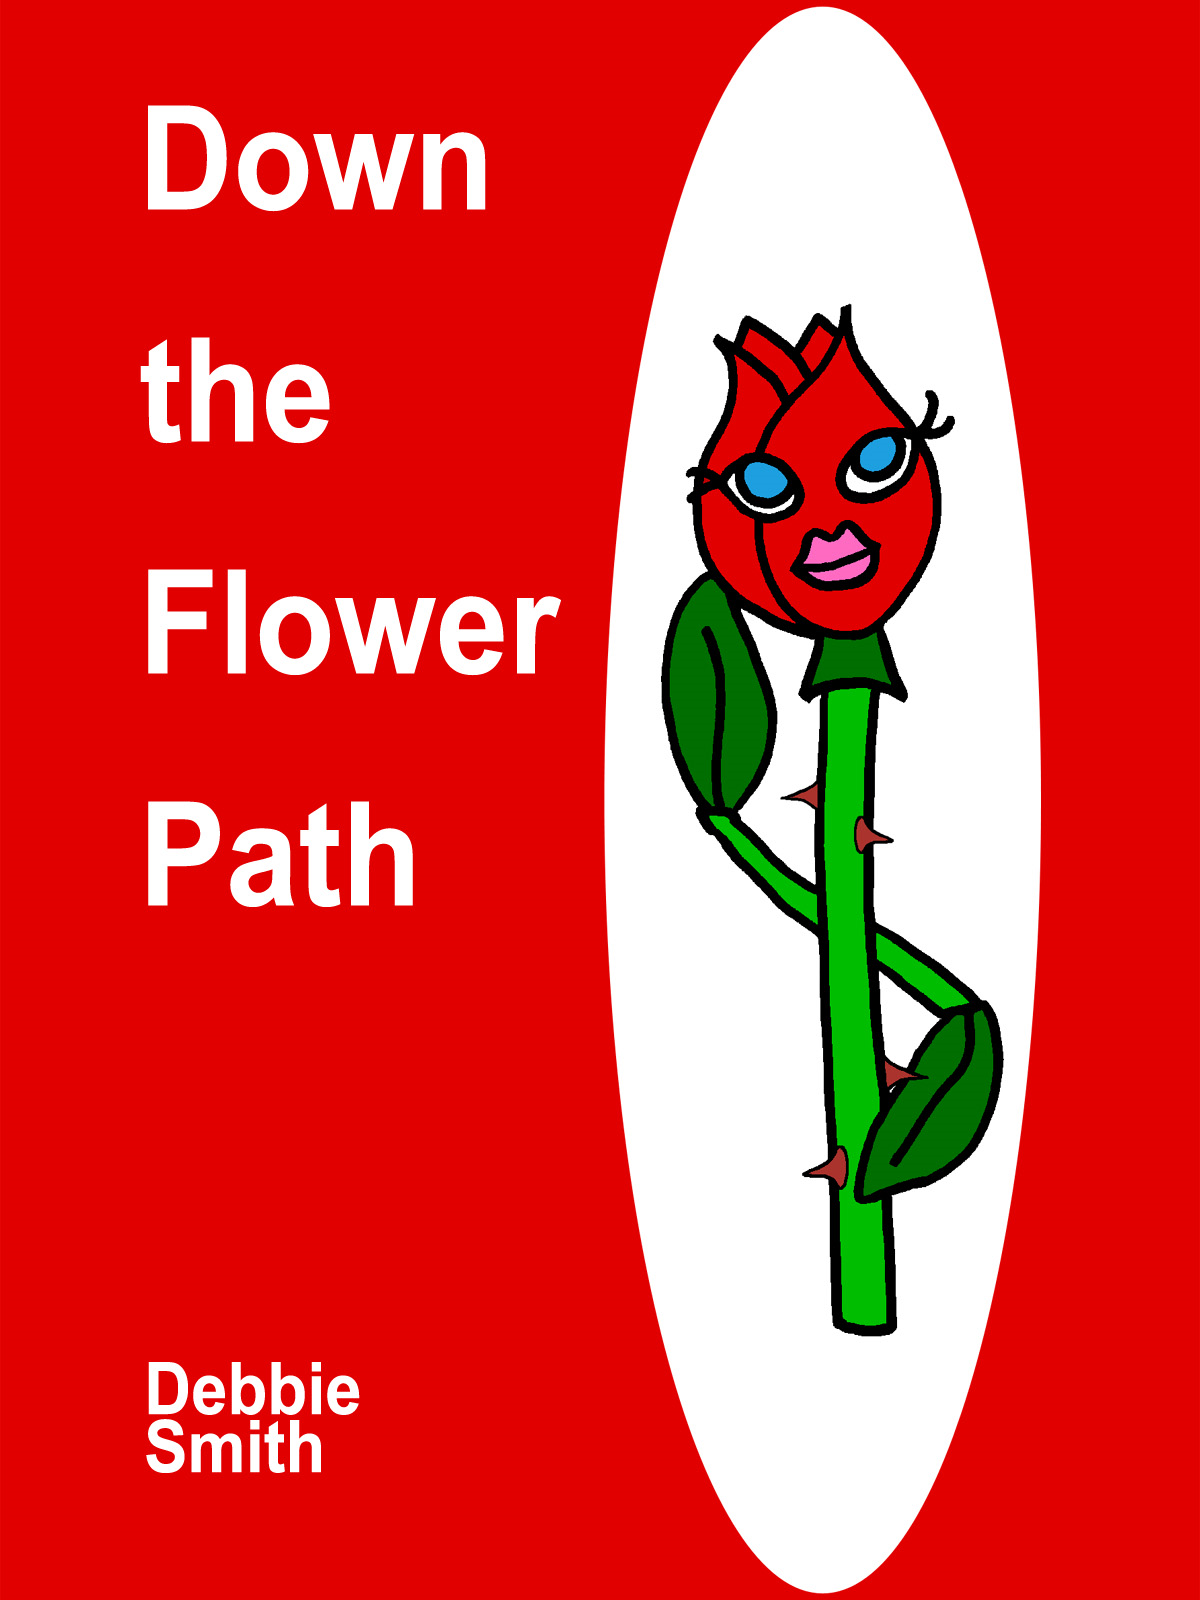 Down the Flower Path